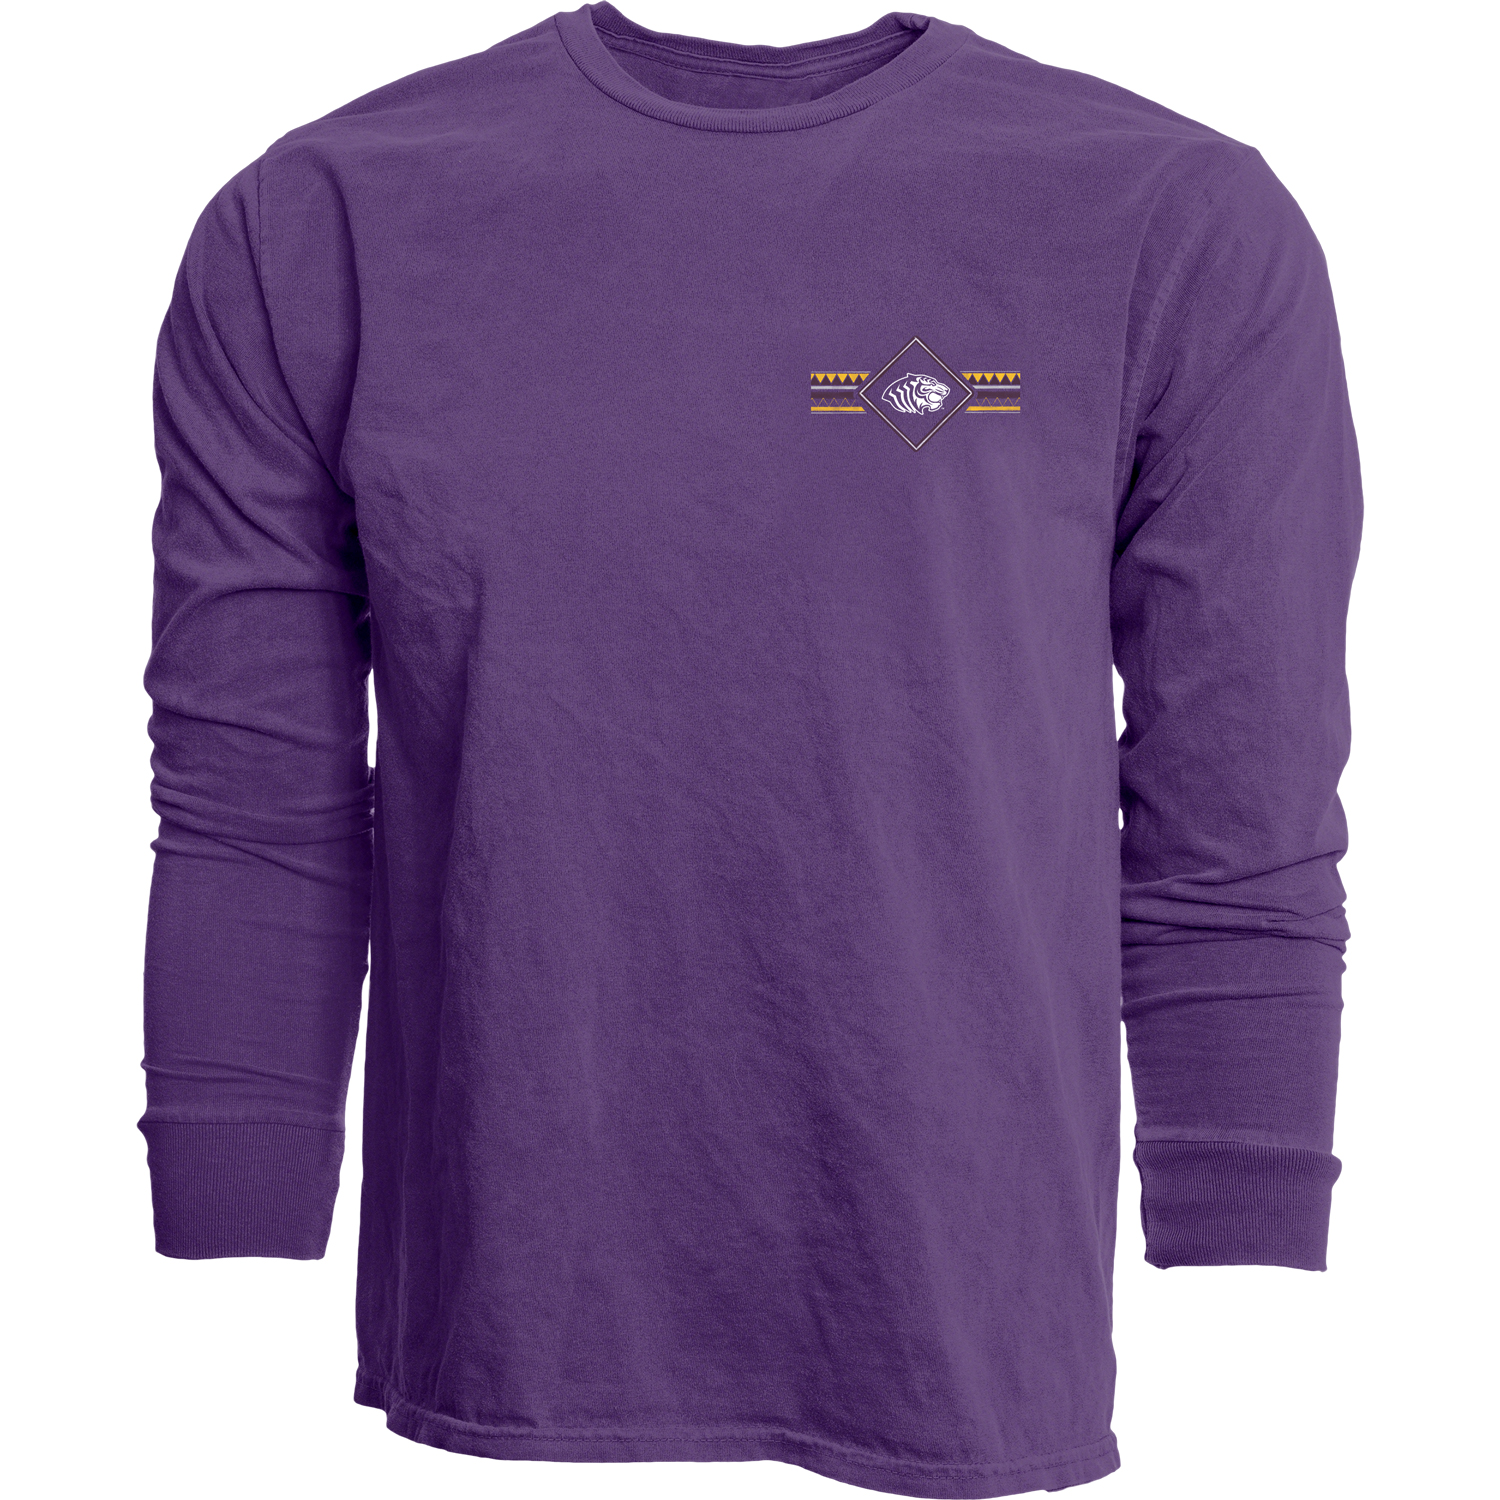 OUACHITA ARTS AND CRAFTS TEE